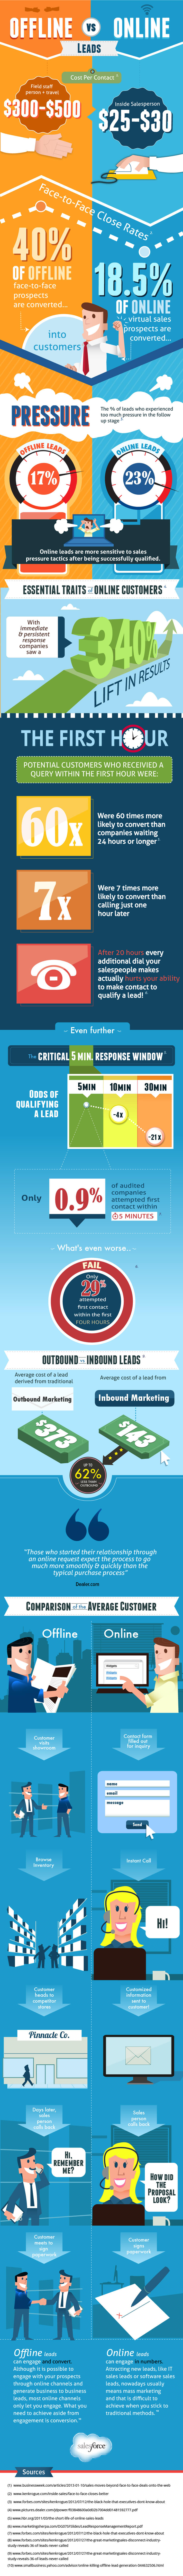 The Difference Between Online & Offline Leads